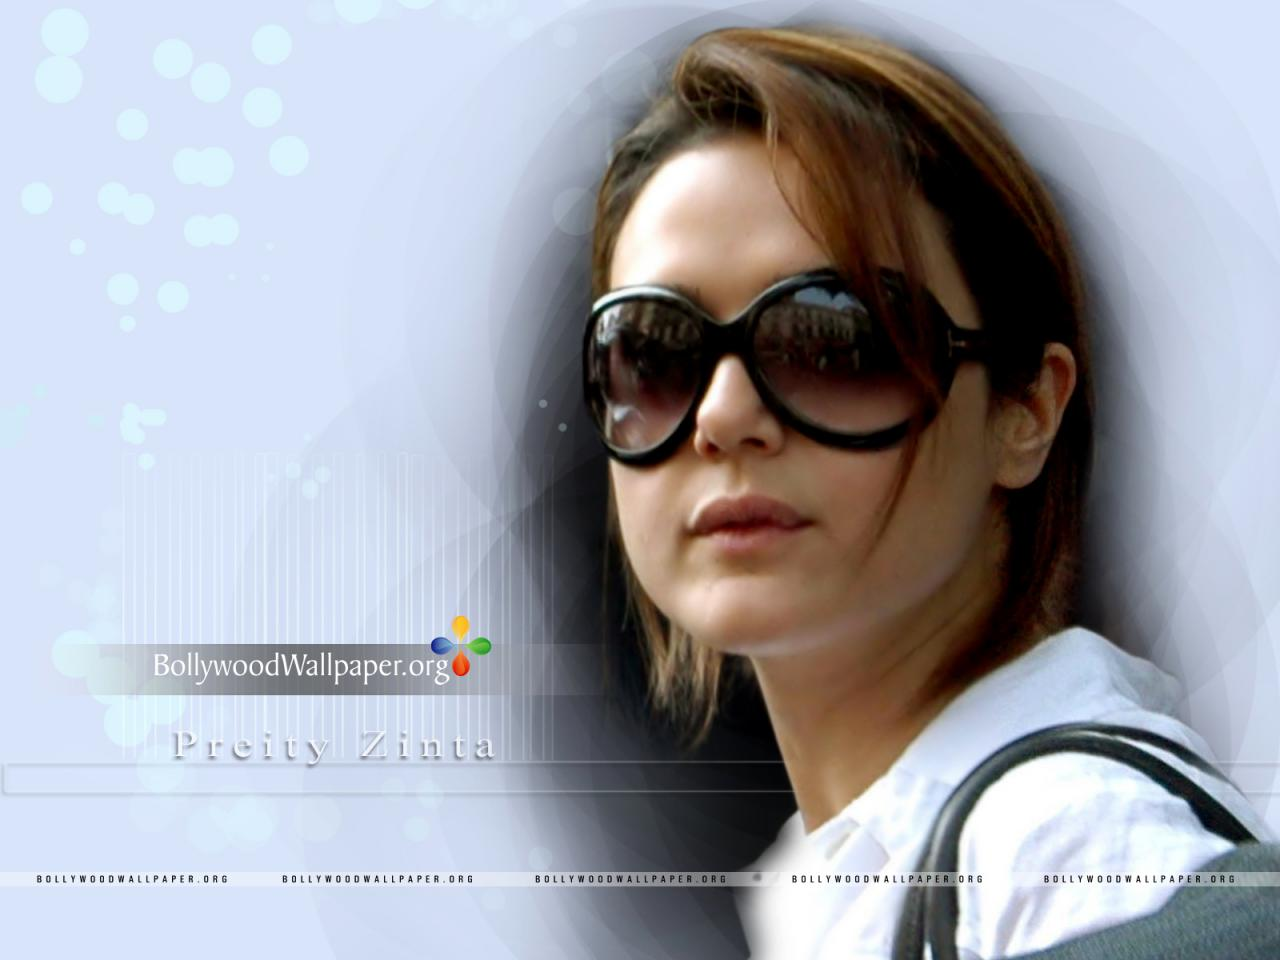 Wallpaper Pelho28 HD Of Preity Zinta